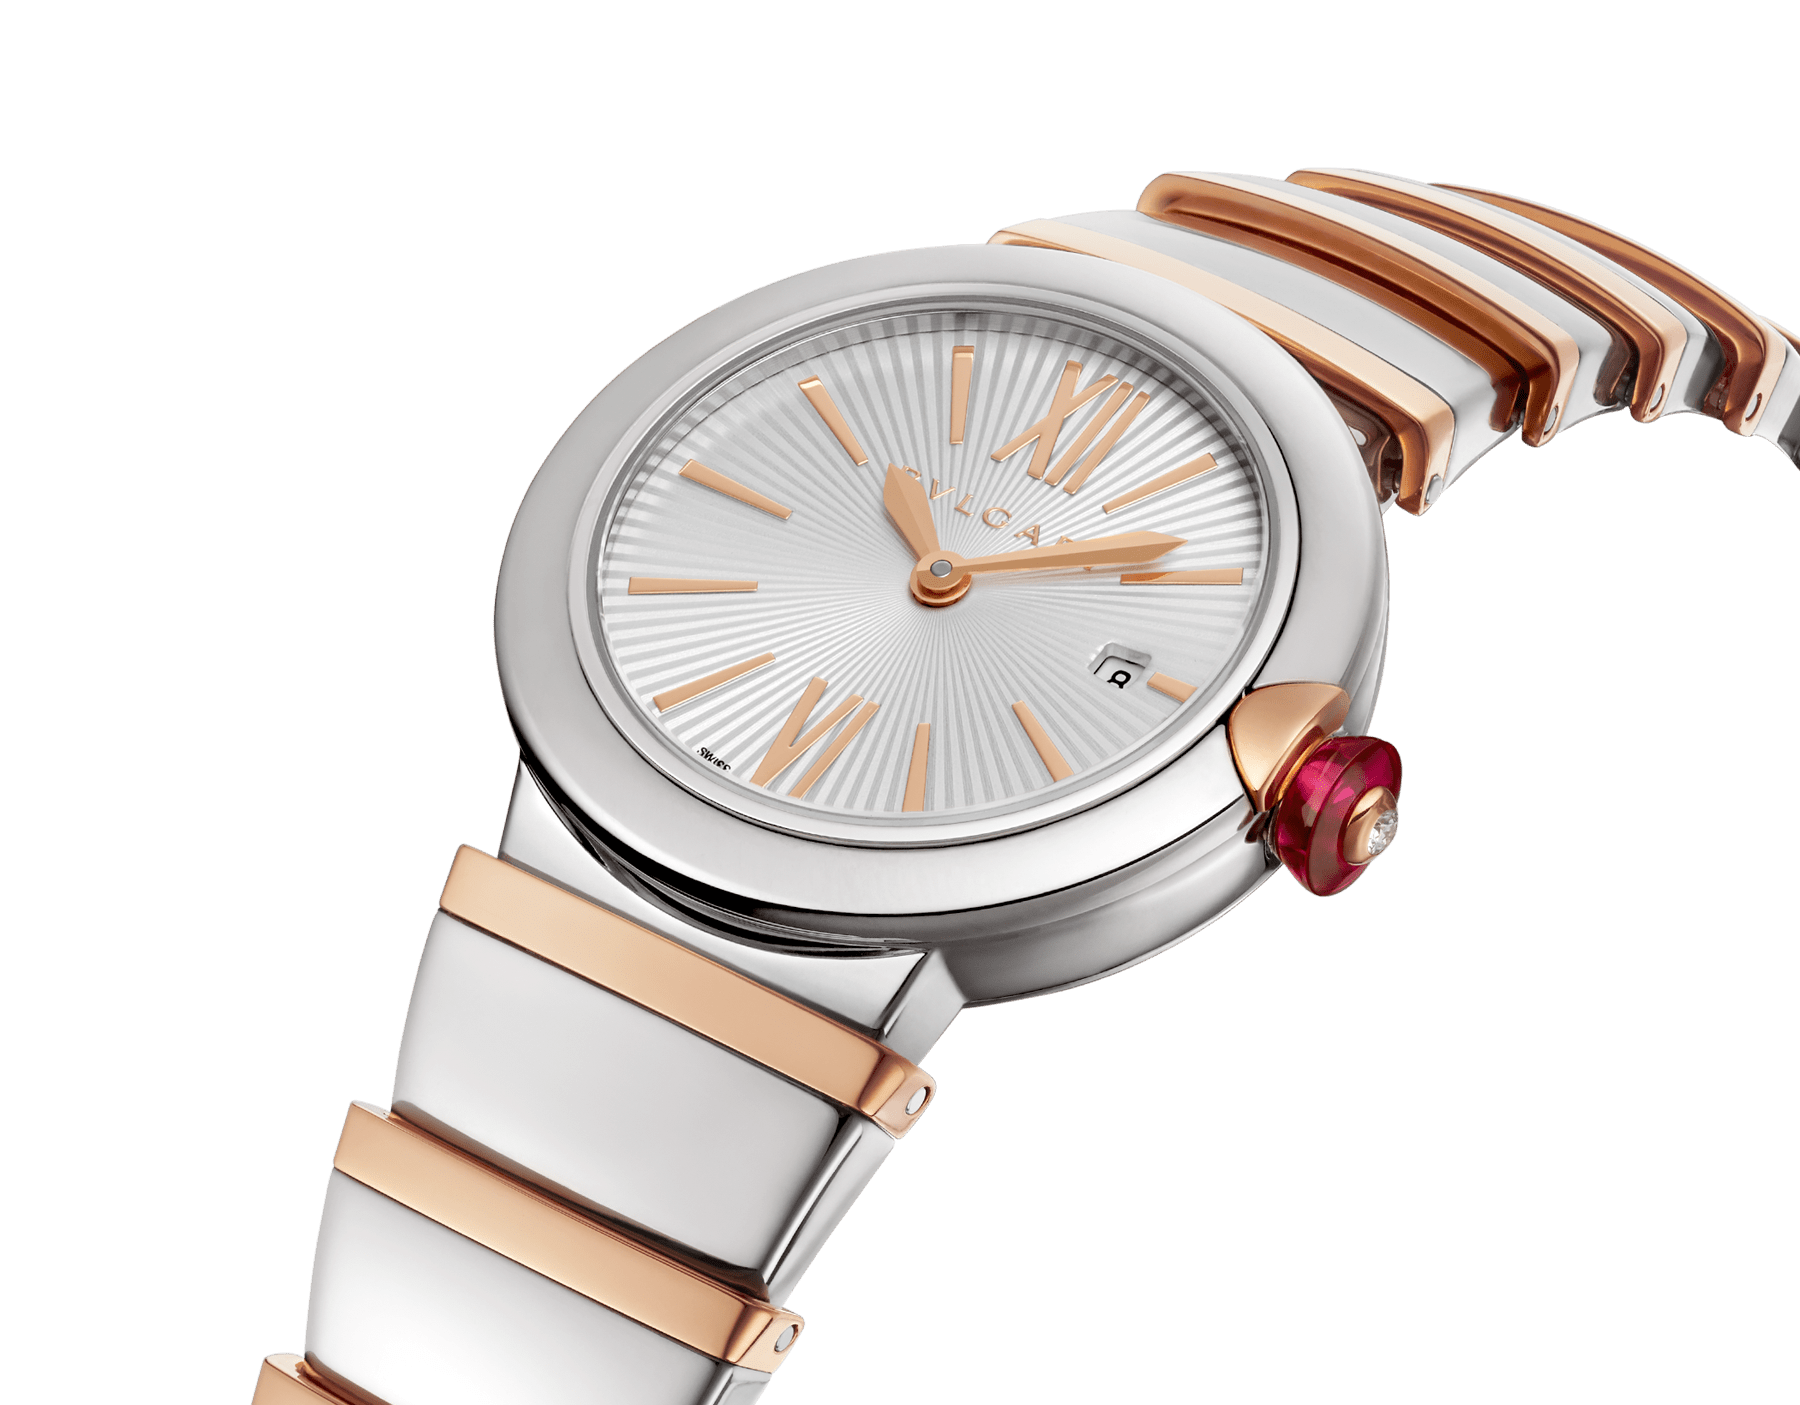 LVCEA watch with stainless steel case, silver opaline dial and bracelet in 18 kt rose gold and stainless steel. 102193 image 2